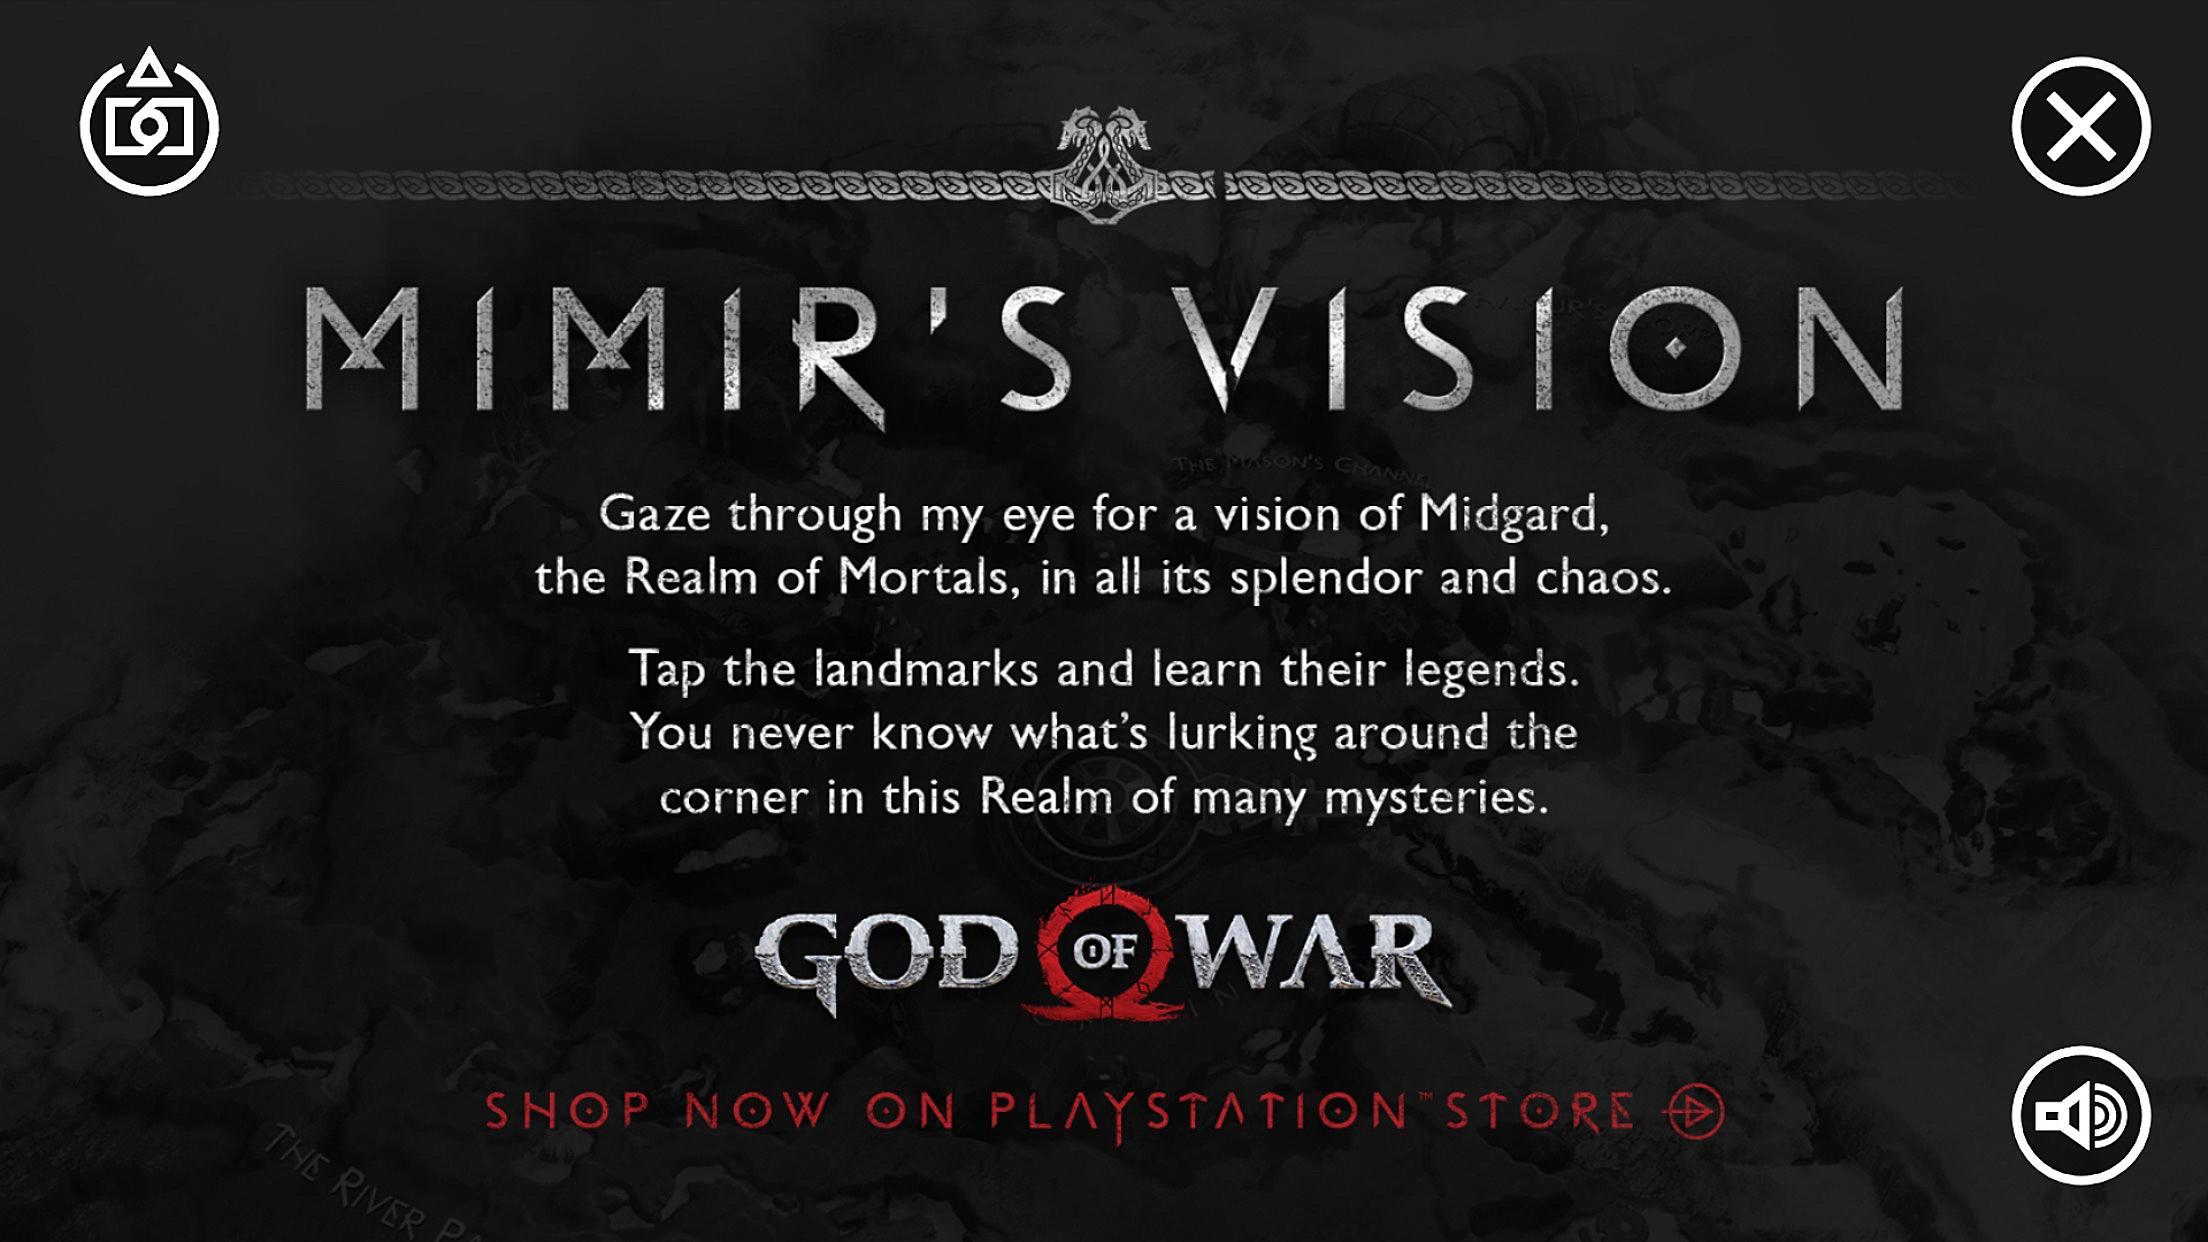 God of War | Mimir's Vision 1.3 Screenshot 17